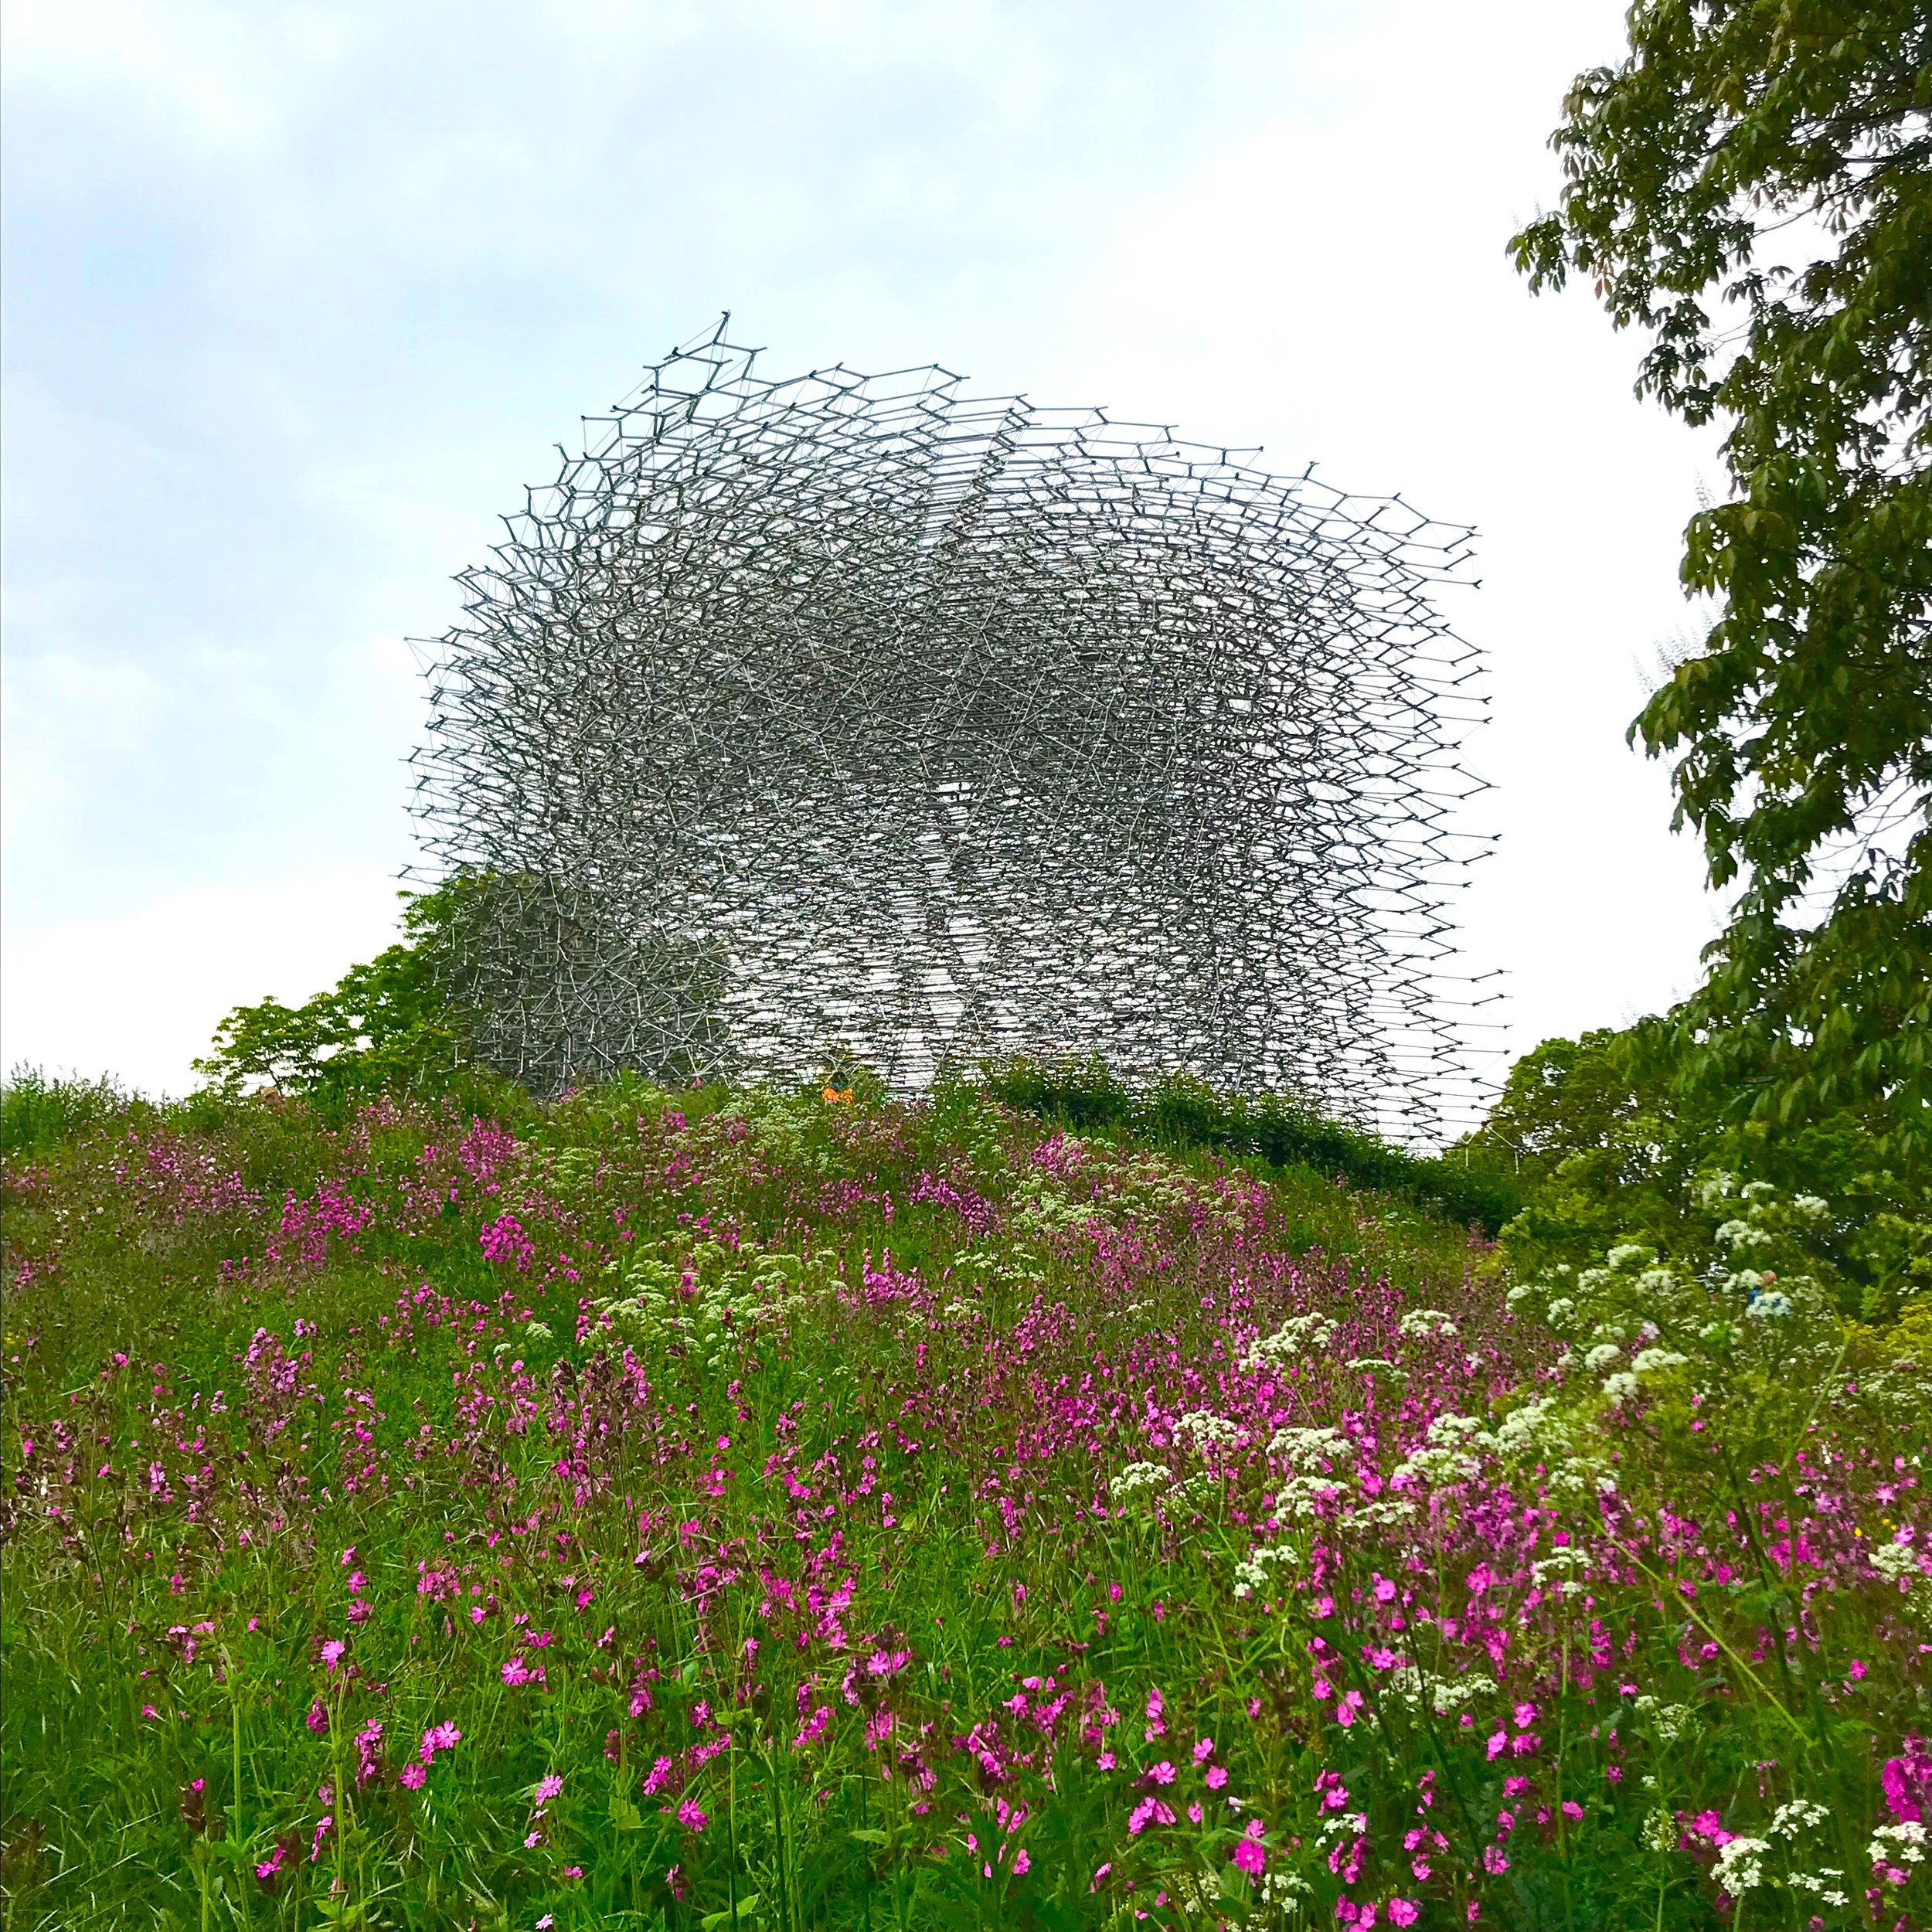 My favourite Kew attraction - the astonishing Hive. A sense of life inside a beehive is conveyed using light and sound.